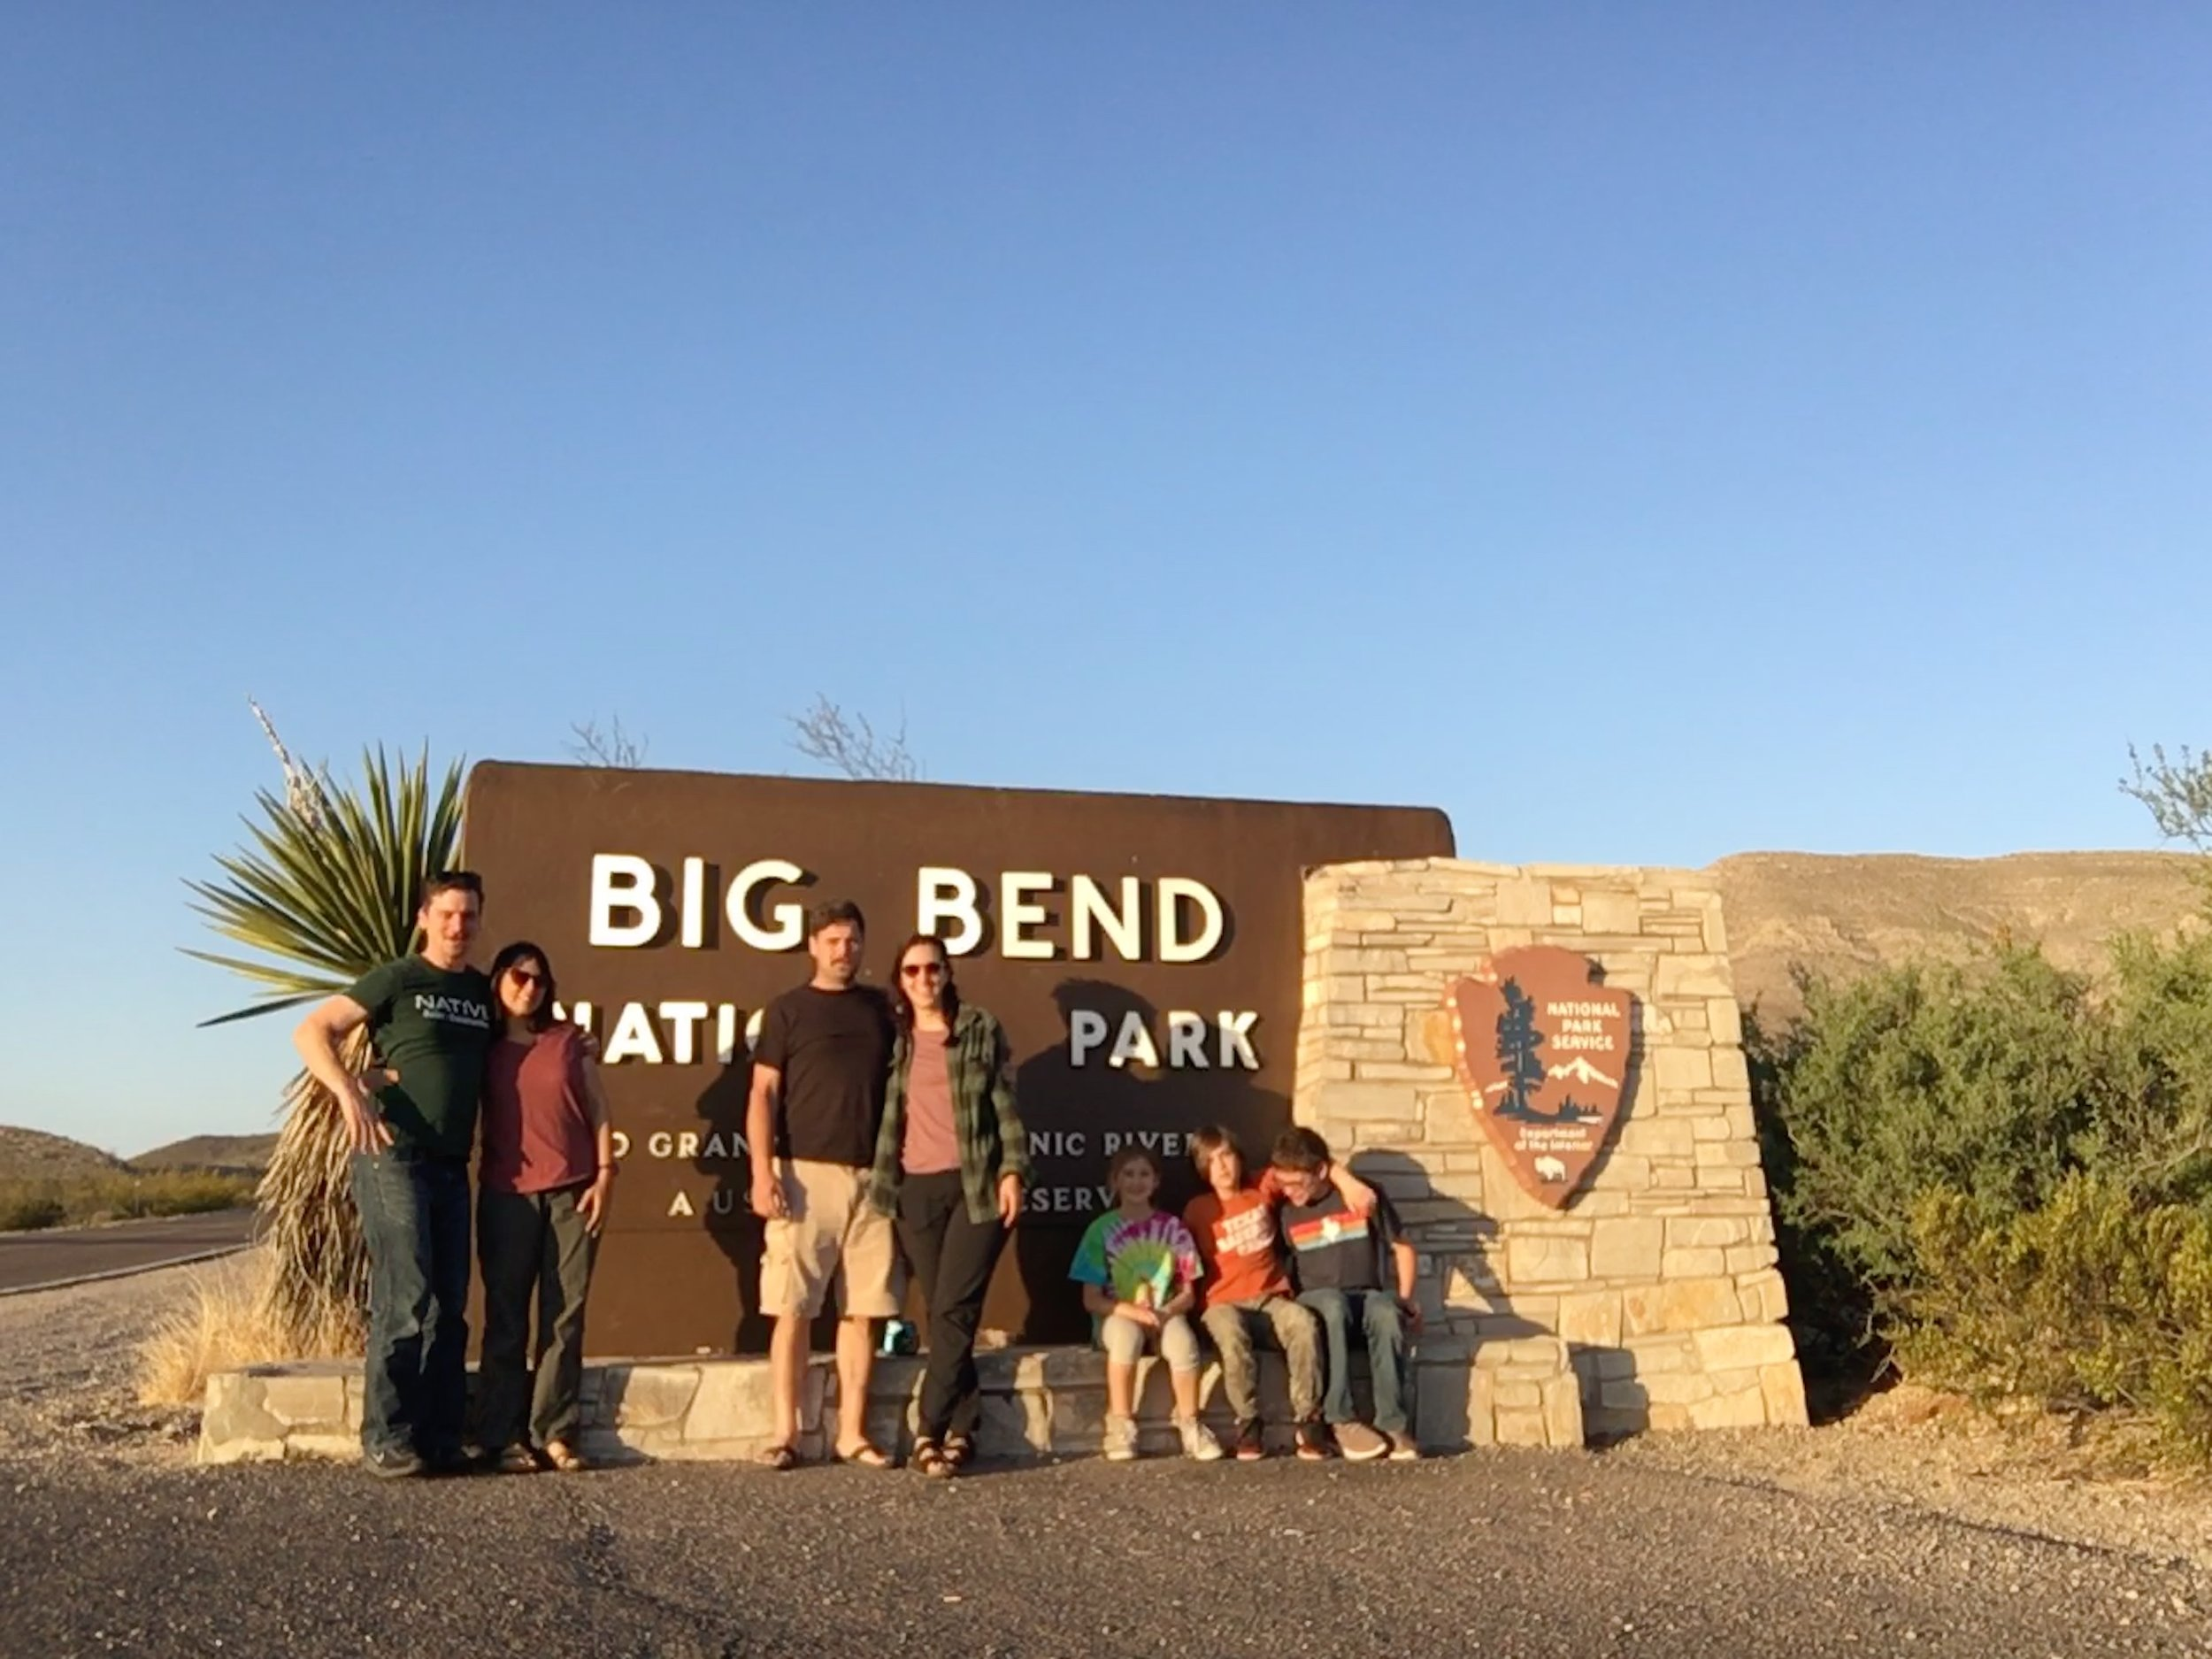 Made it to Big Bend